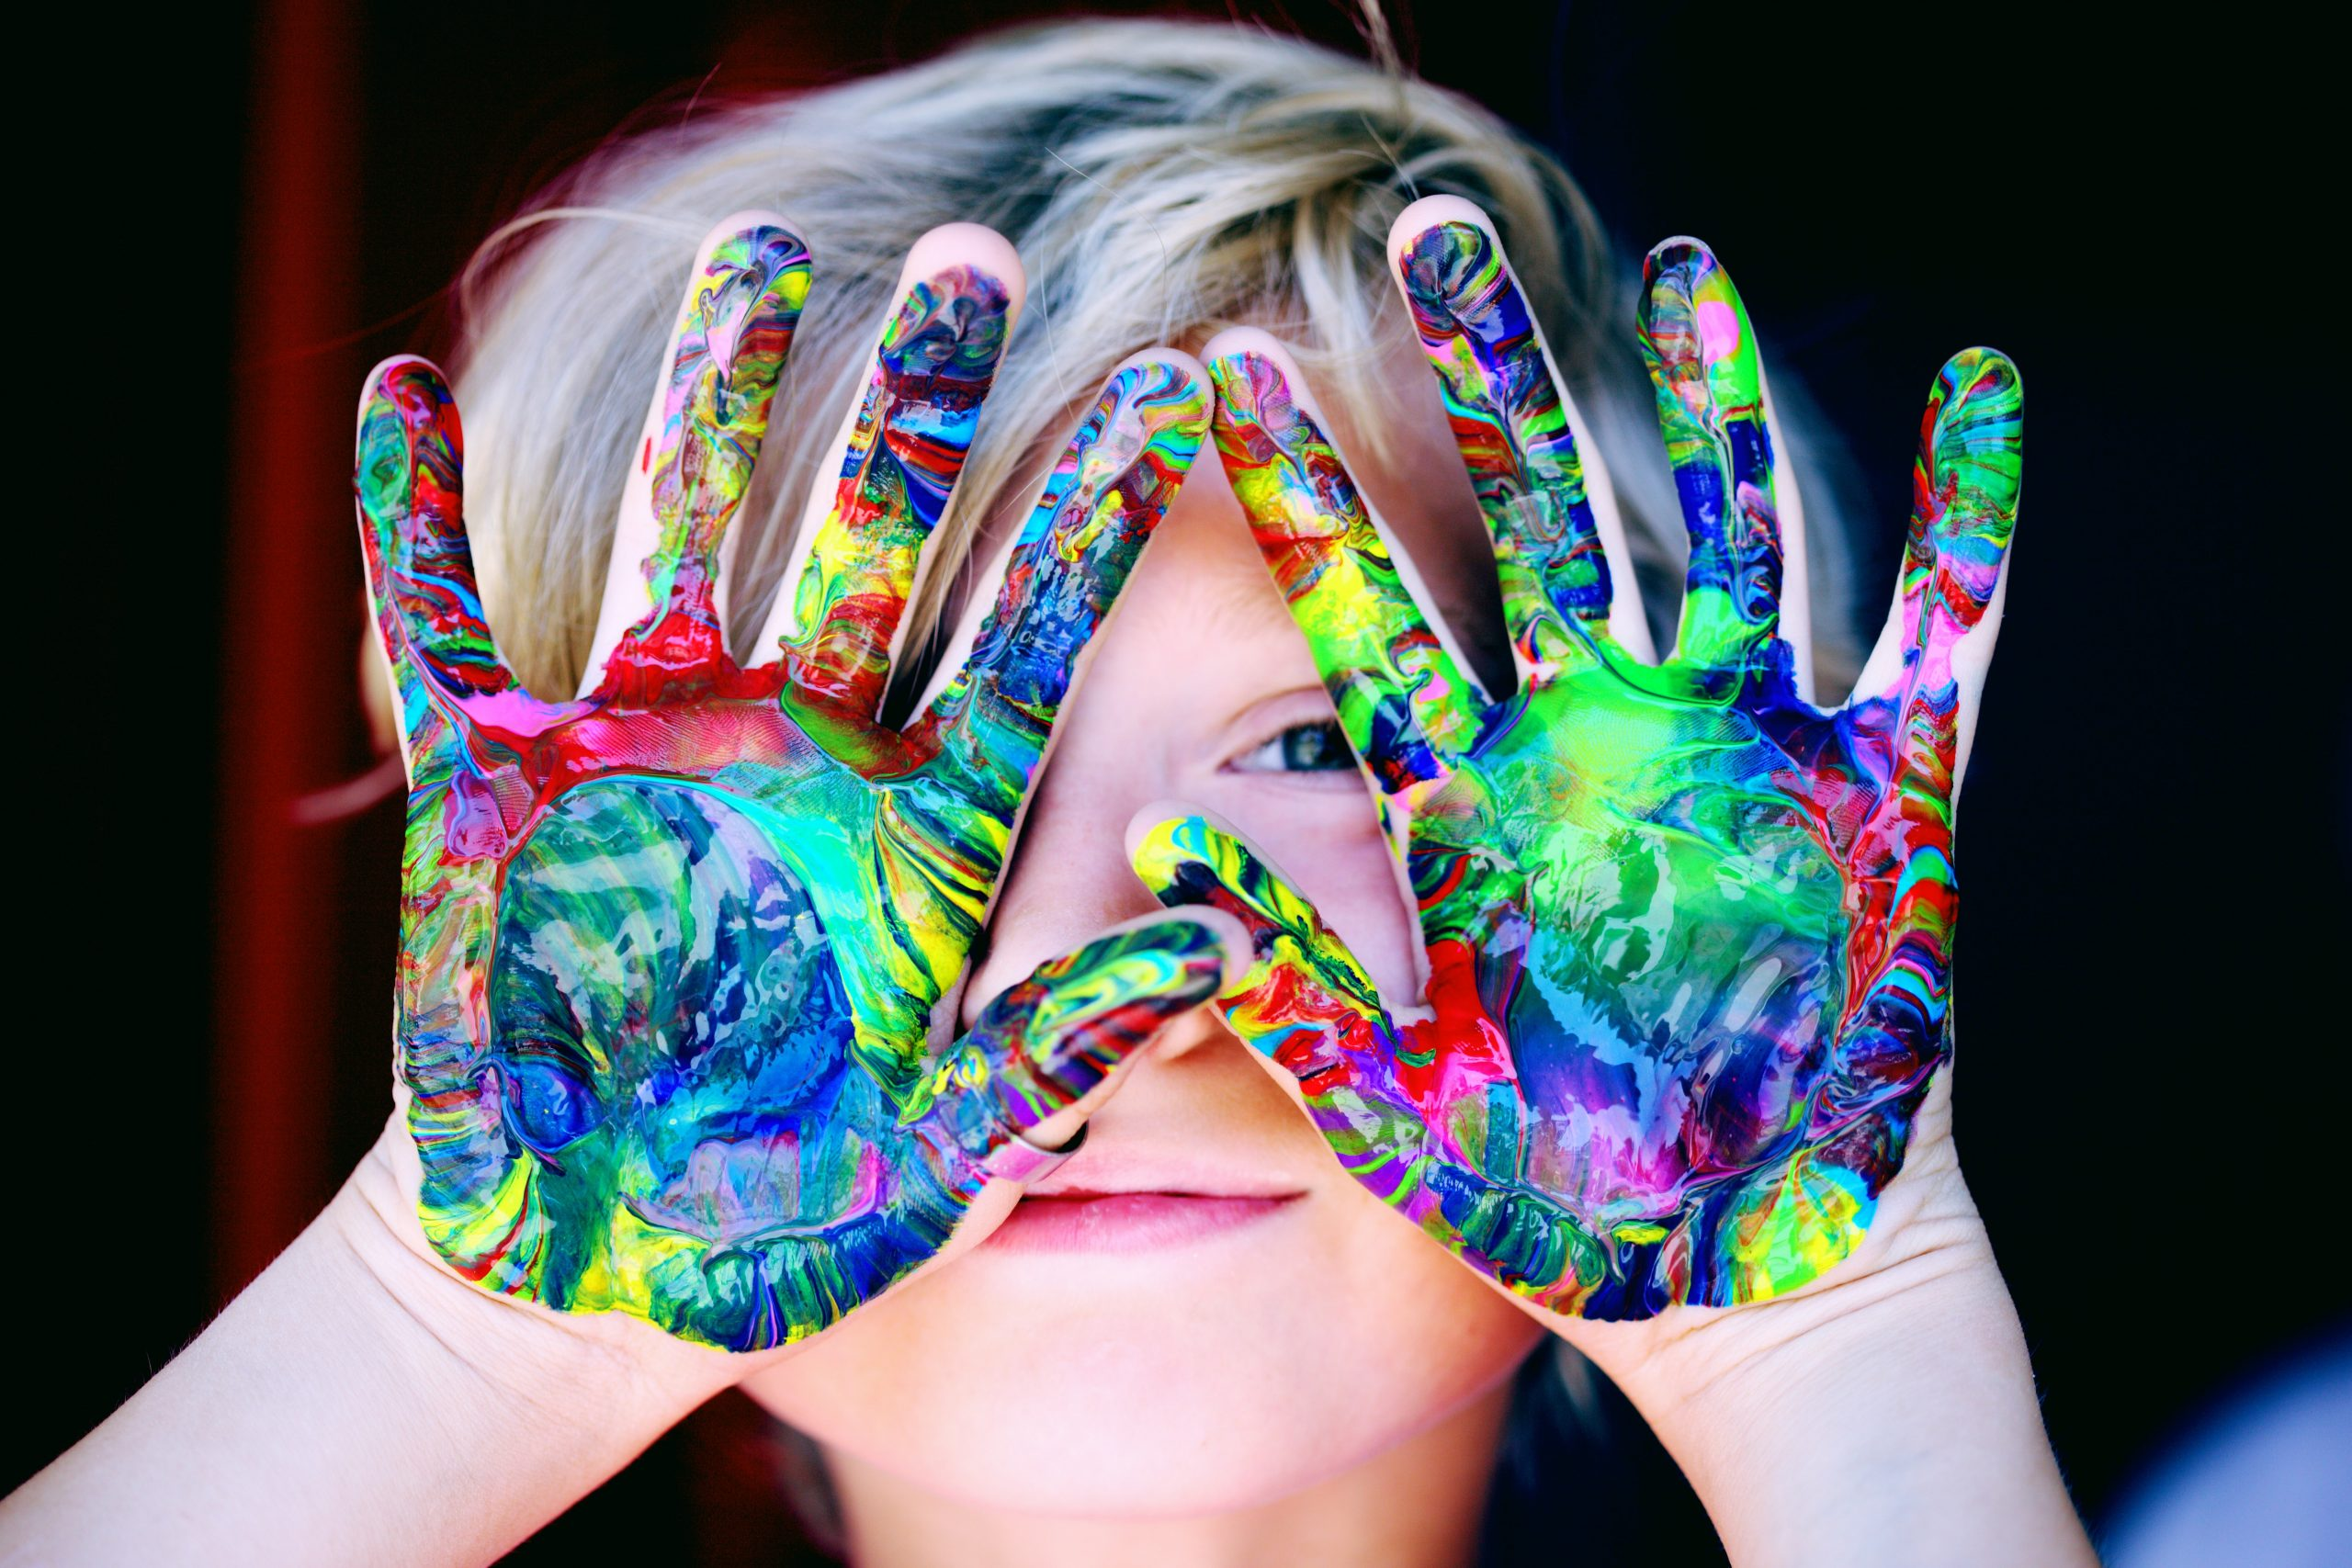 smiling child showing hands covered in paint